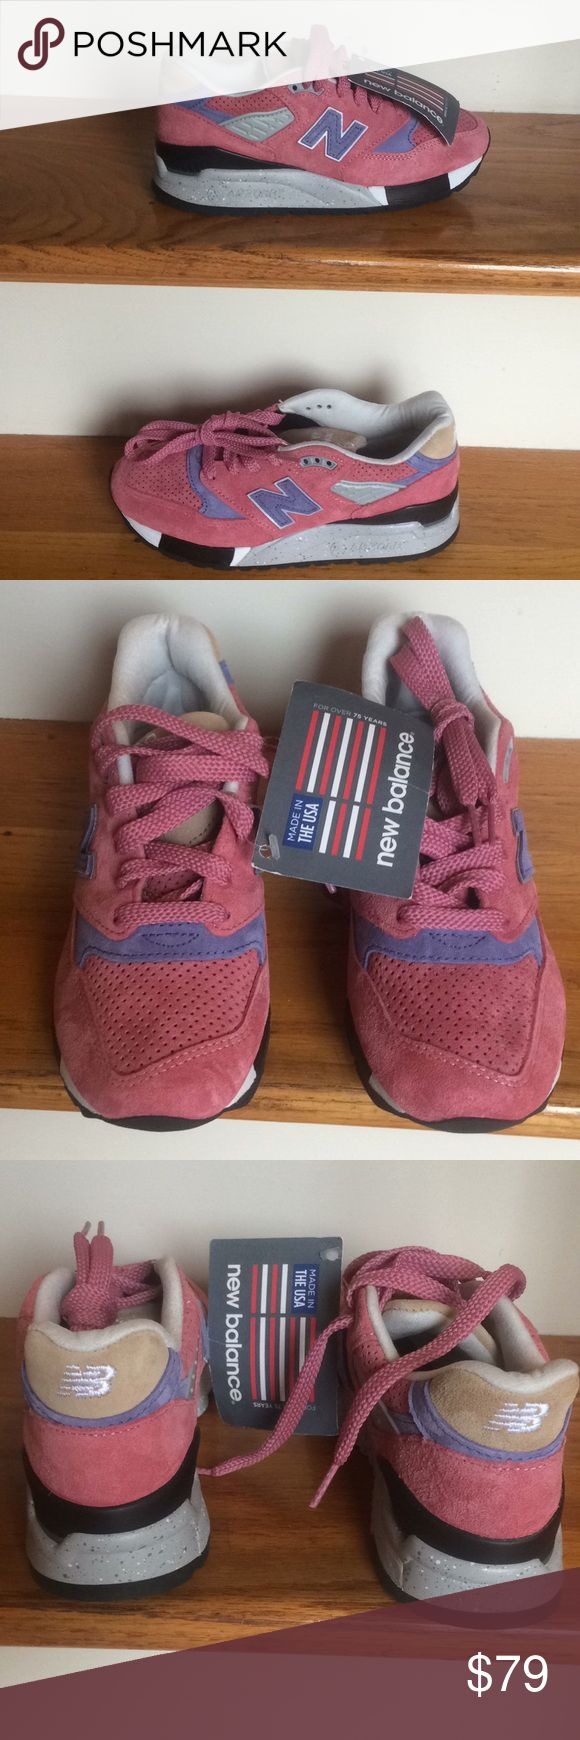 """New with tags, New Balance ABZORB 998 Sneakers New with tags, high quality premium pink suede with mauve""""N"""". Gripped rubber soles are enhanced with ABZORB cushioning. B width. No box. New Balance Shoes Sneakers"""